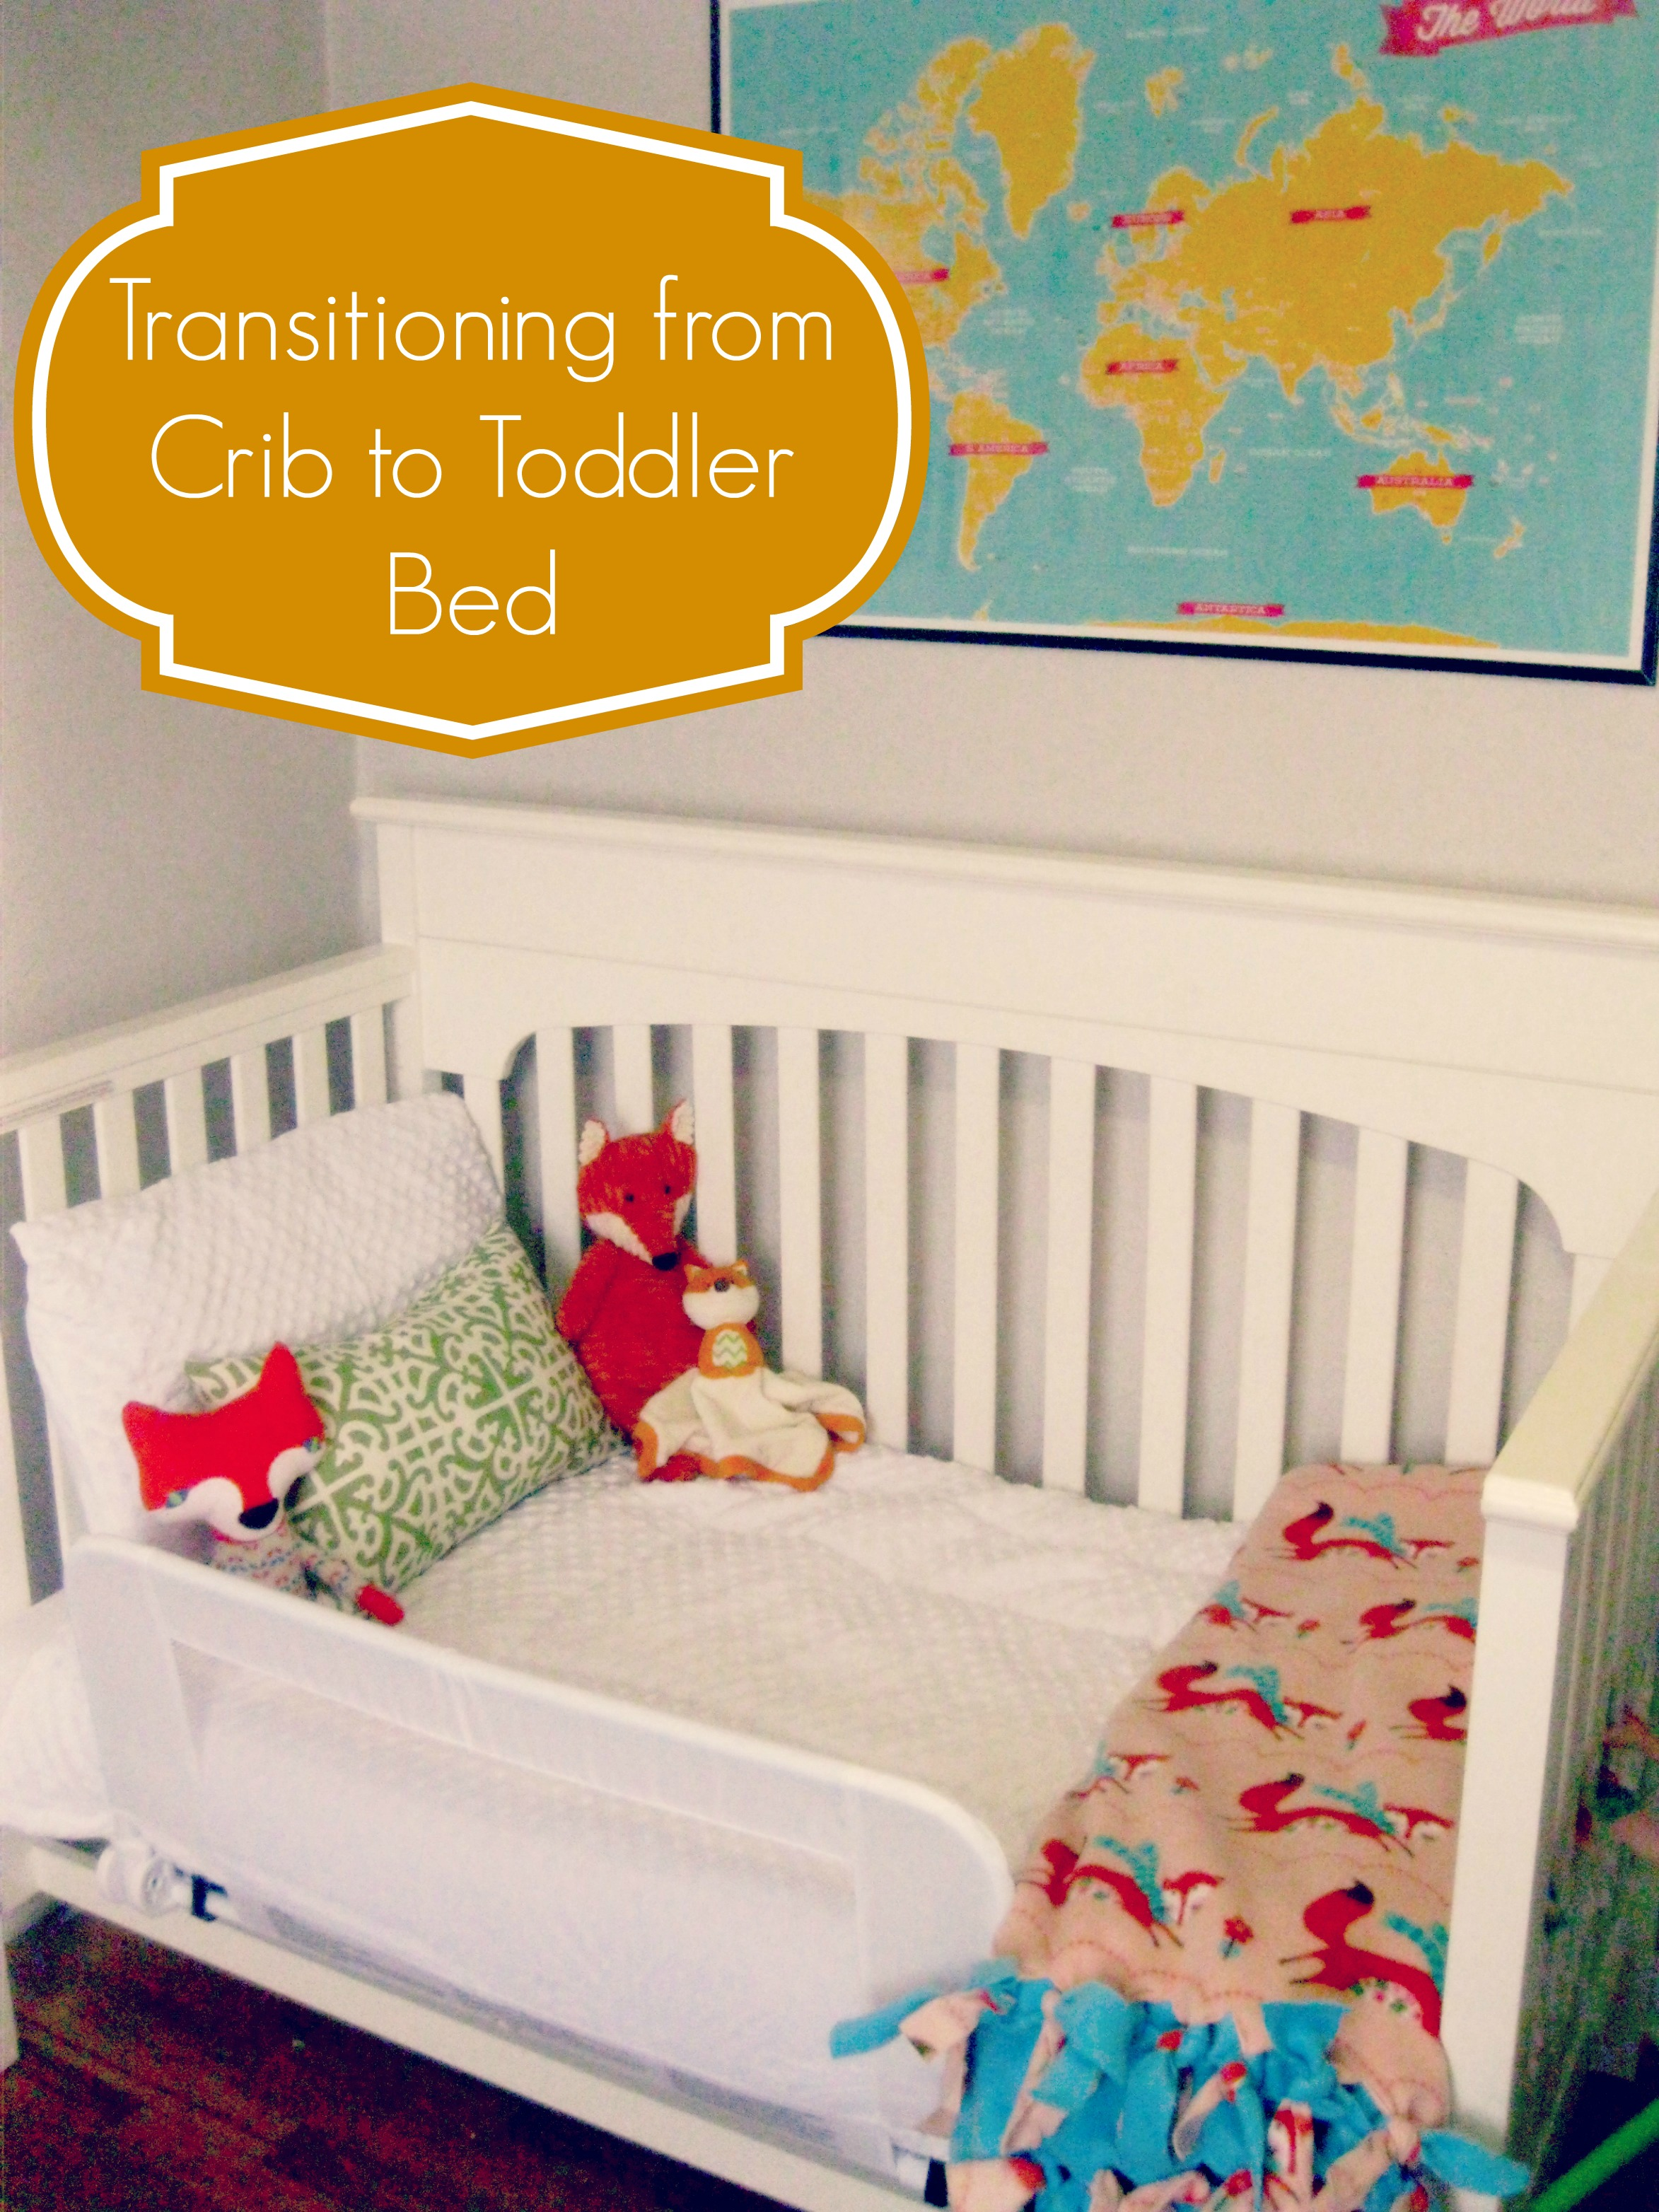 91 Toddler Crib To Bed Transition